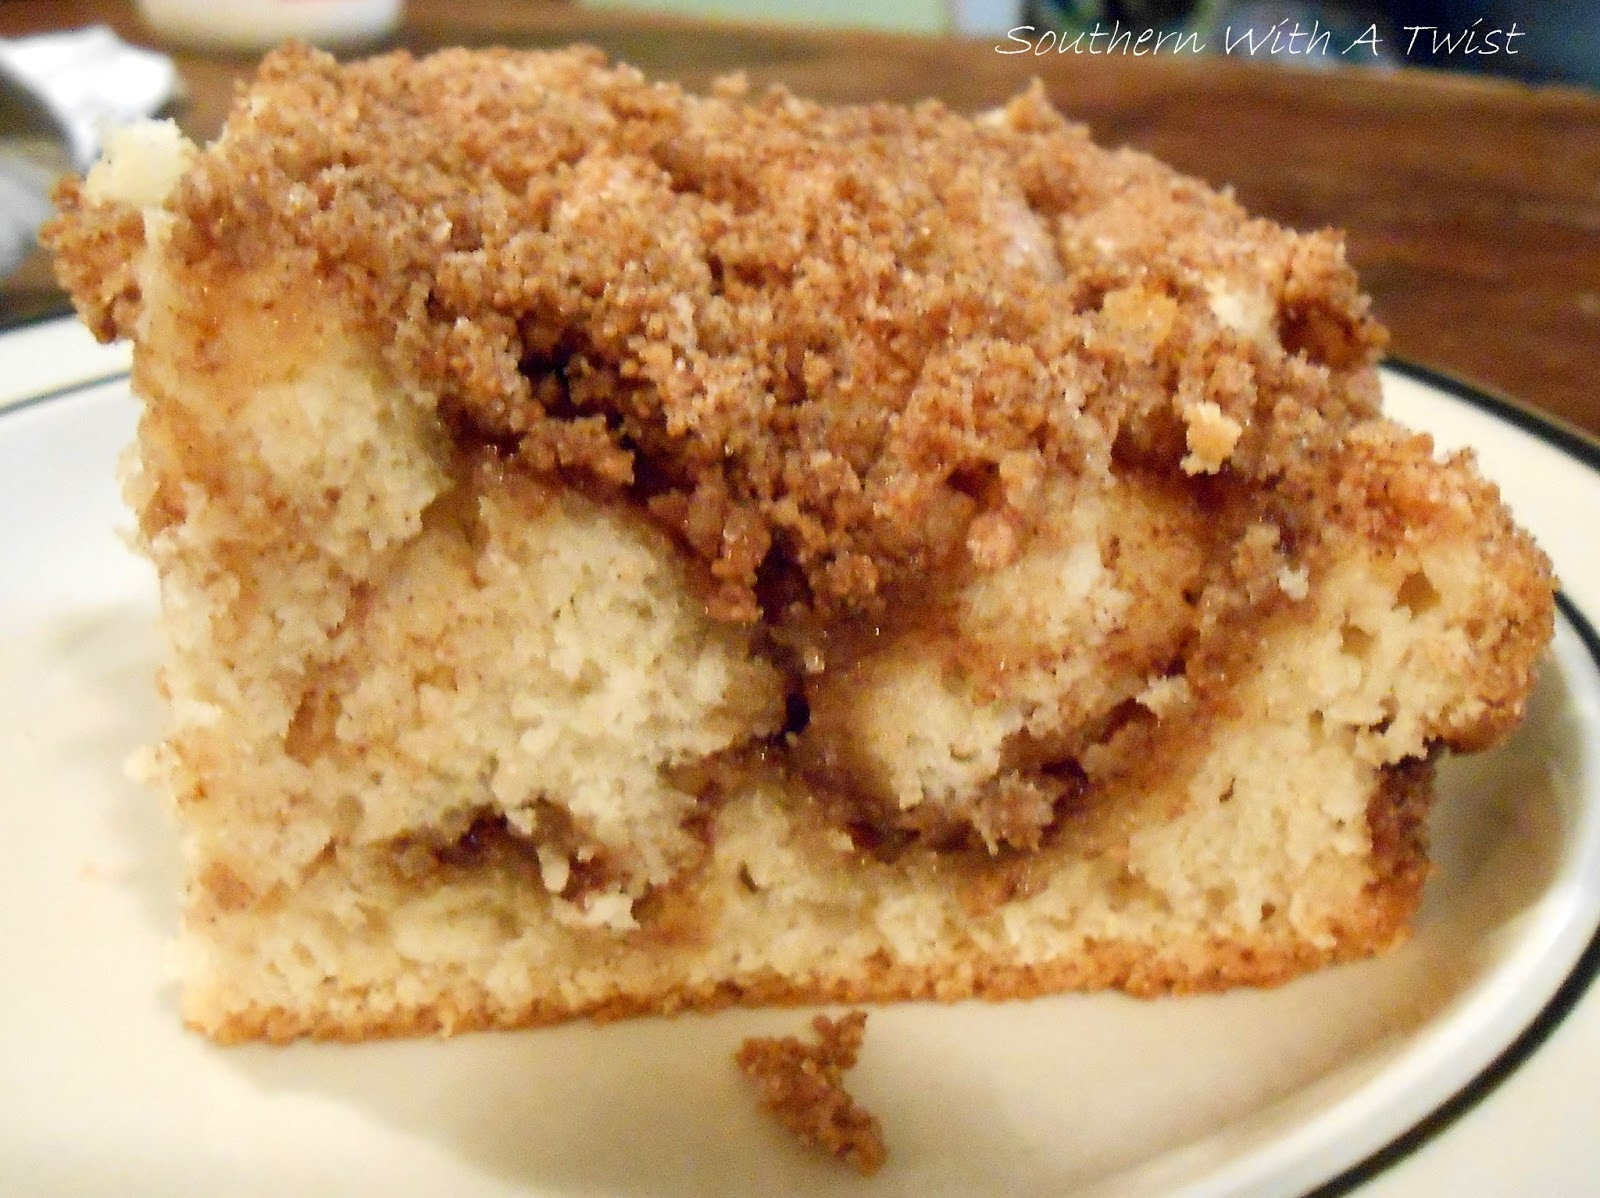 Cinnamon Streusel Coffee Cake  Southern With A Twist Cinnamon Streusel Coffee Cake